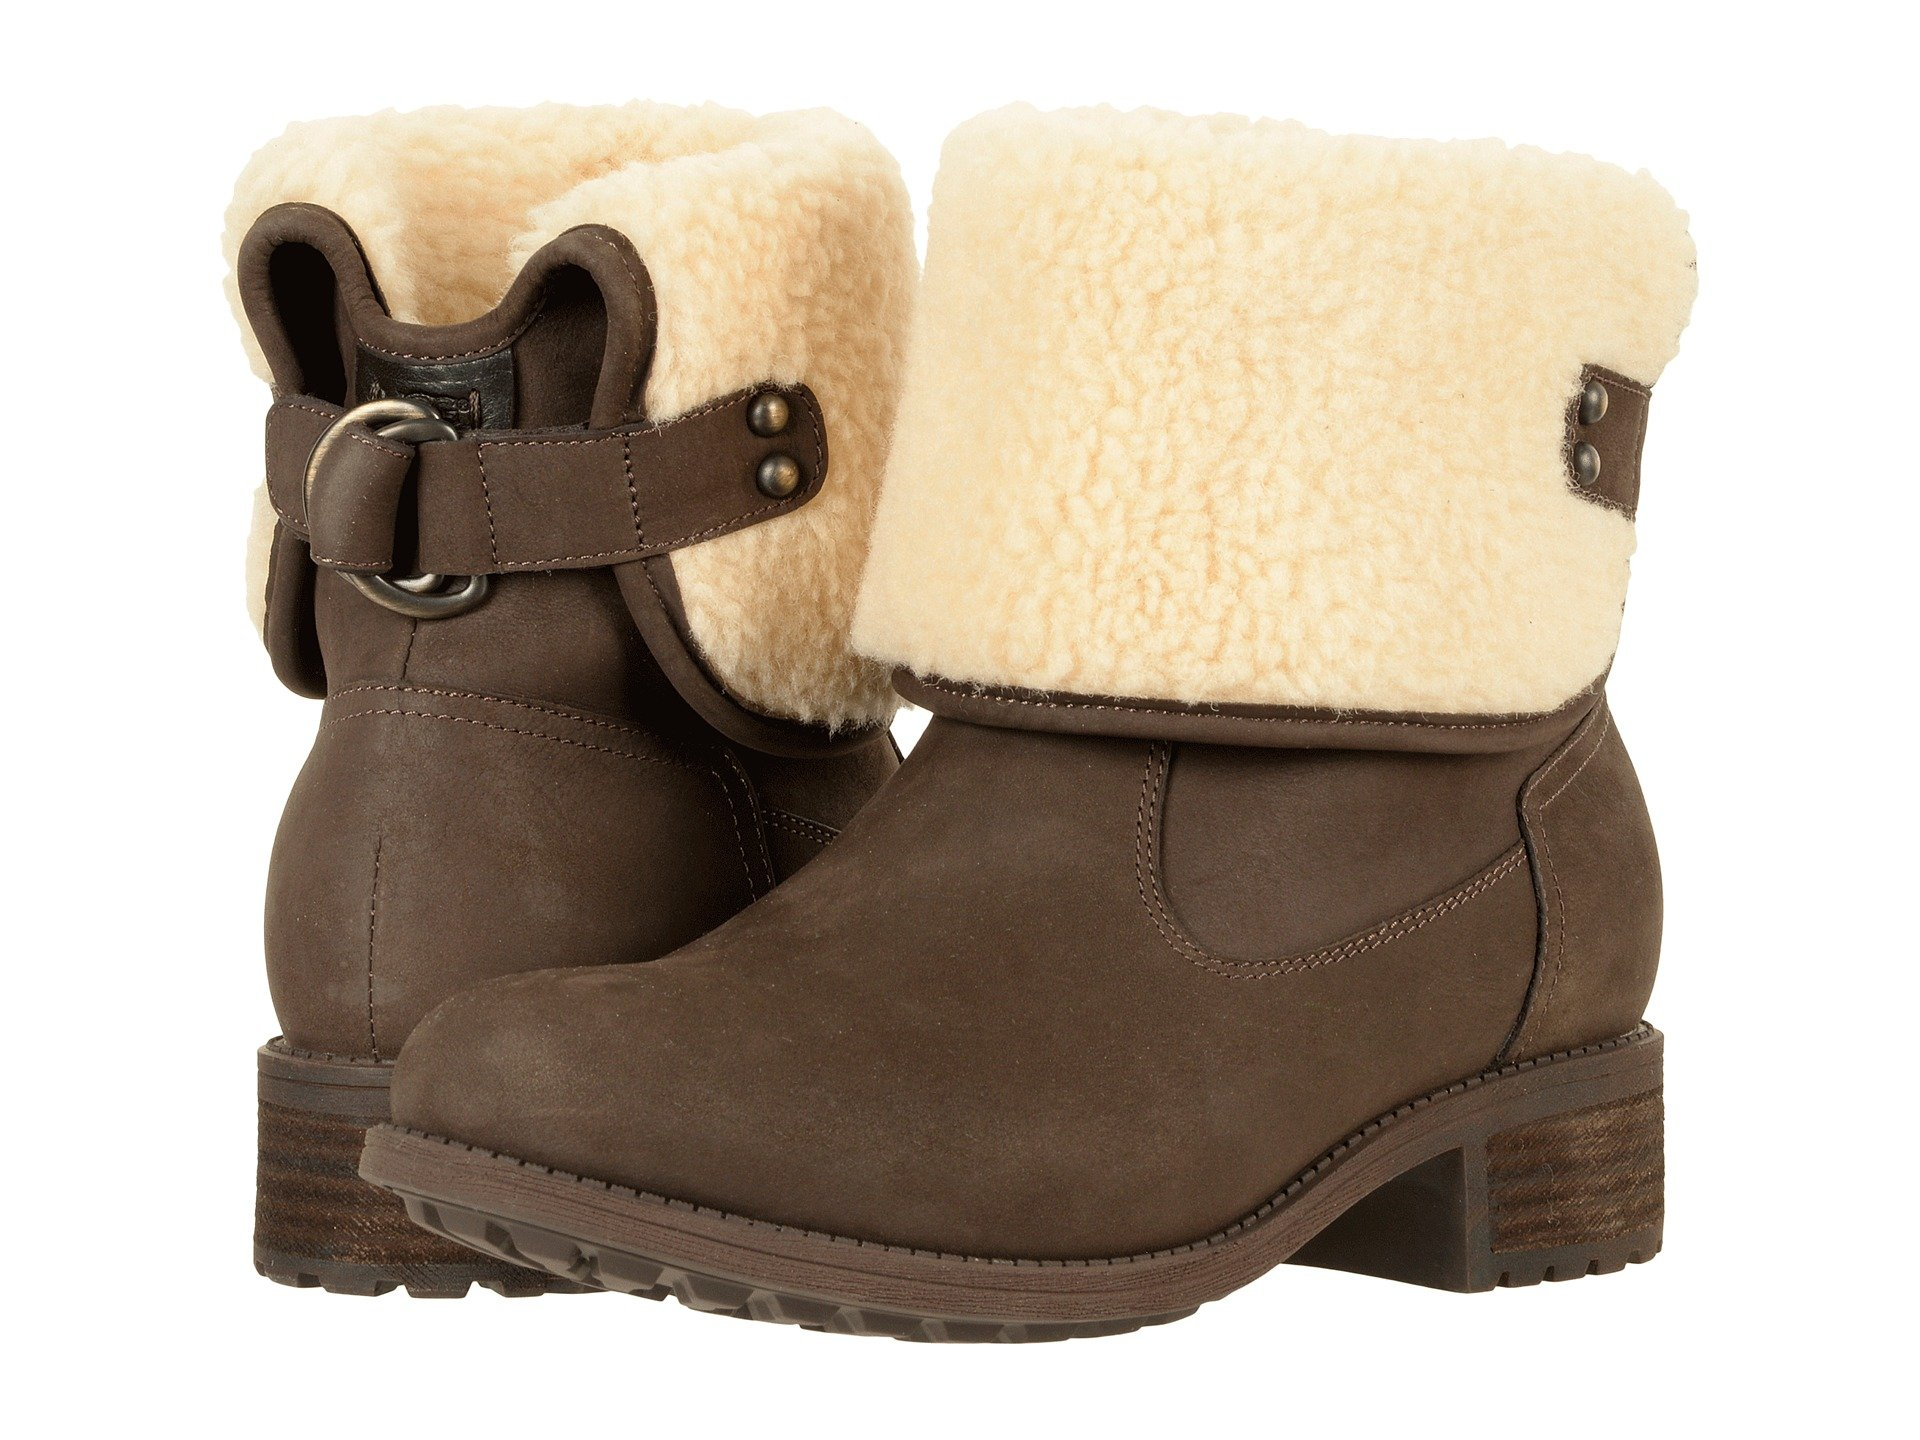 ugg aldon ankle boots on sale 6 pm